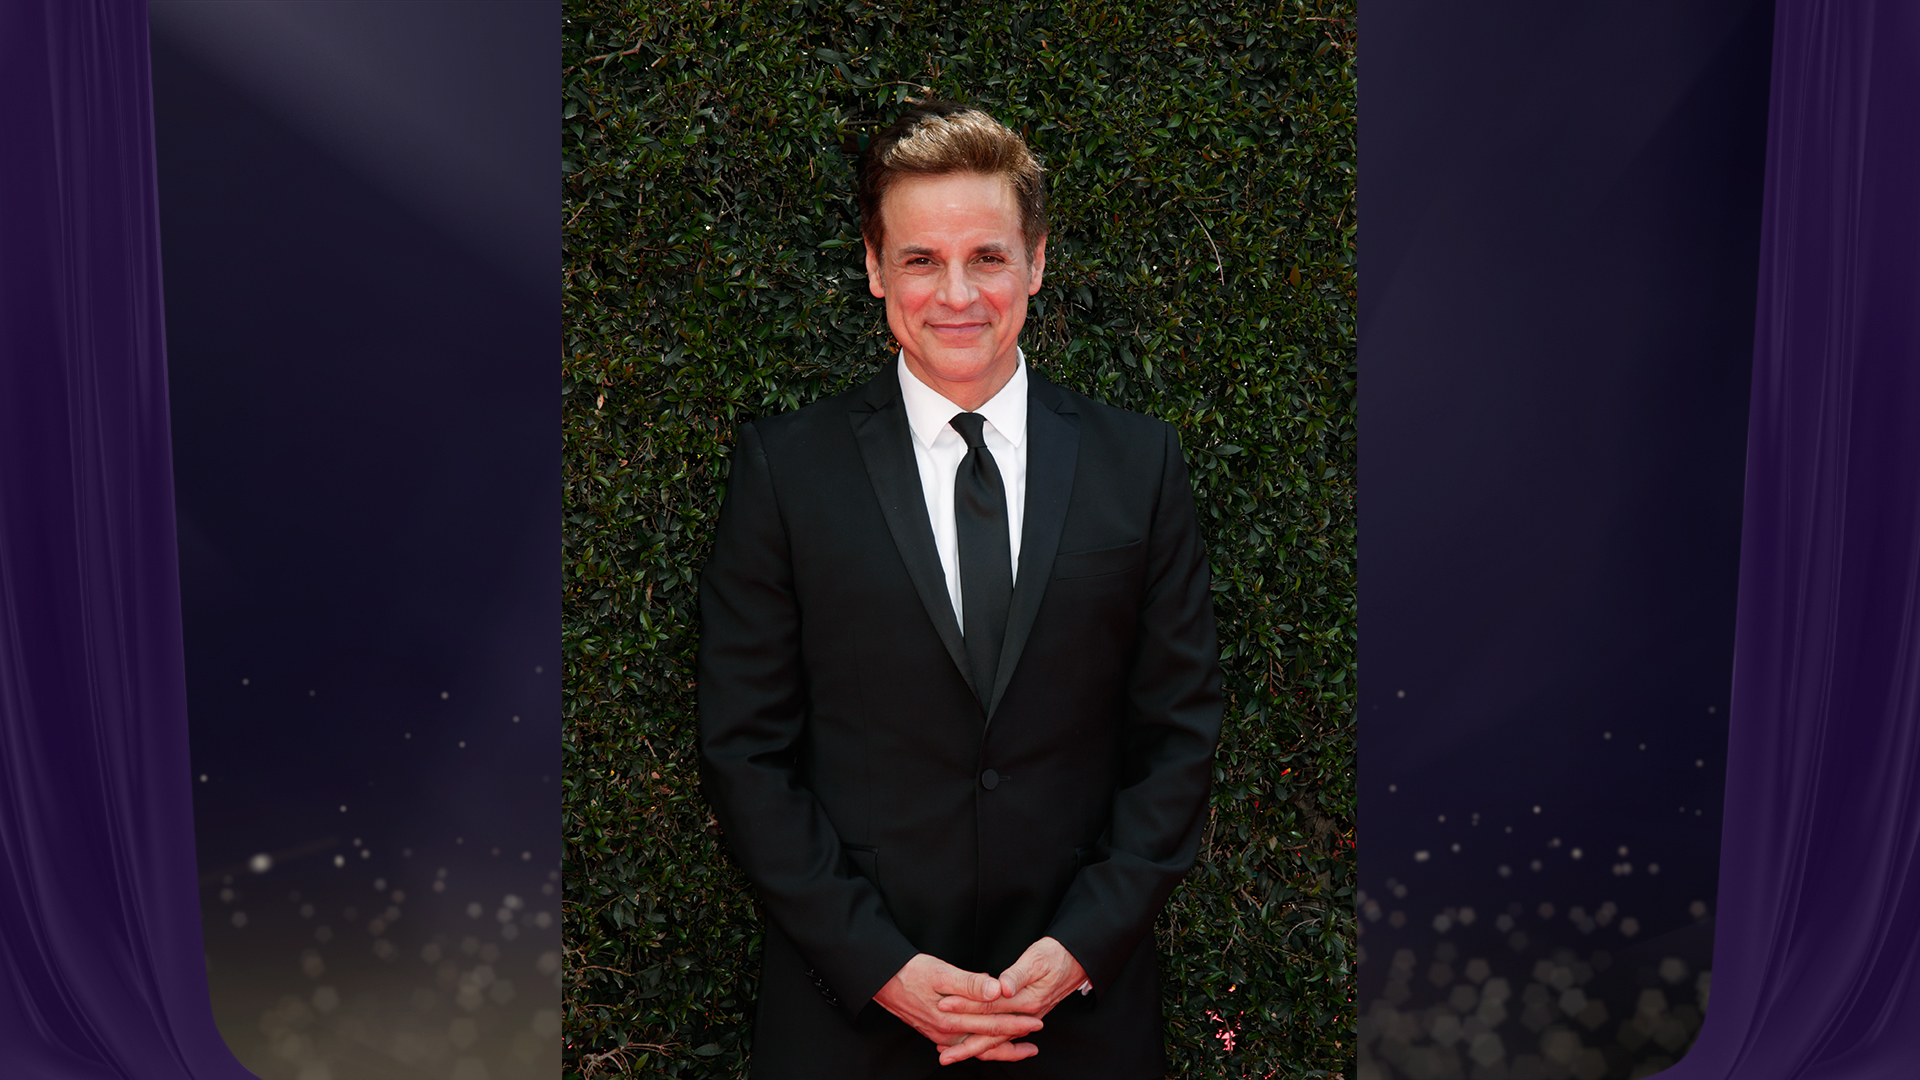 Christian LeBlanc from The Young and the Restless looks effortlessly handsome in a simple black tux.